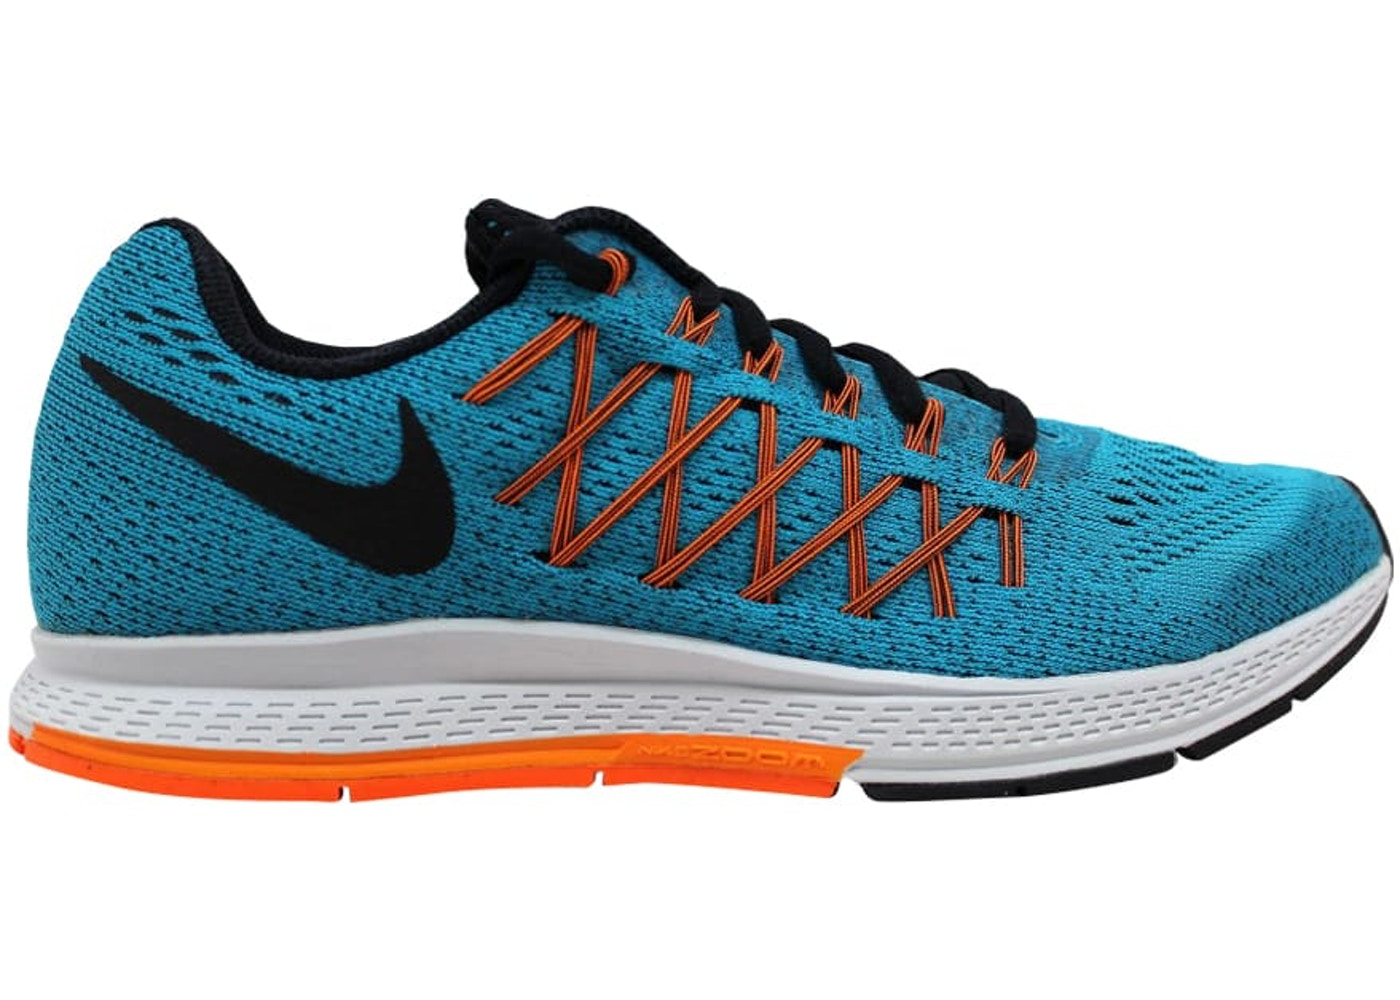 d316ca1685d7 Nike Air Zoom Pegasus 32 Blue Lagoon Black-Bright Citrus-Total Orange